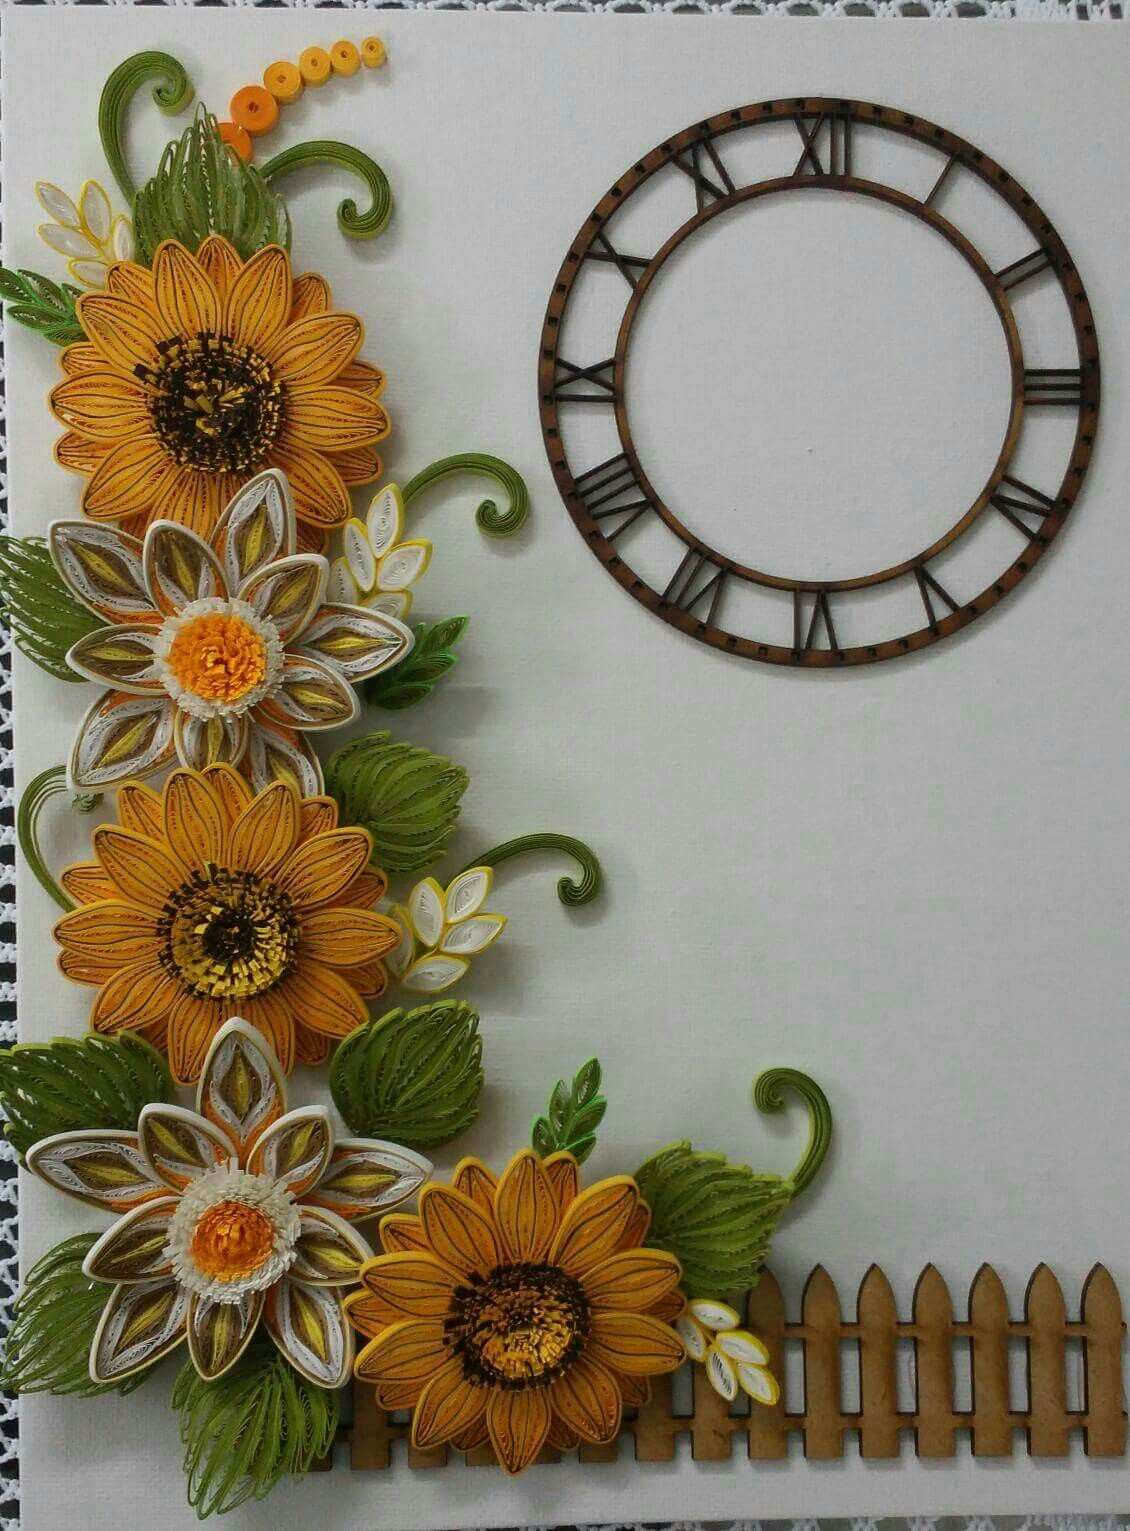 WALL CLOCK quilled frames shadow boxes